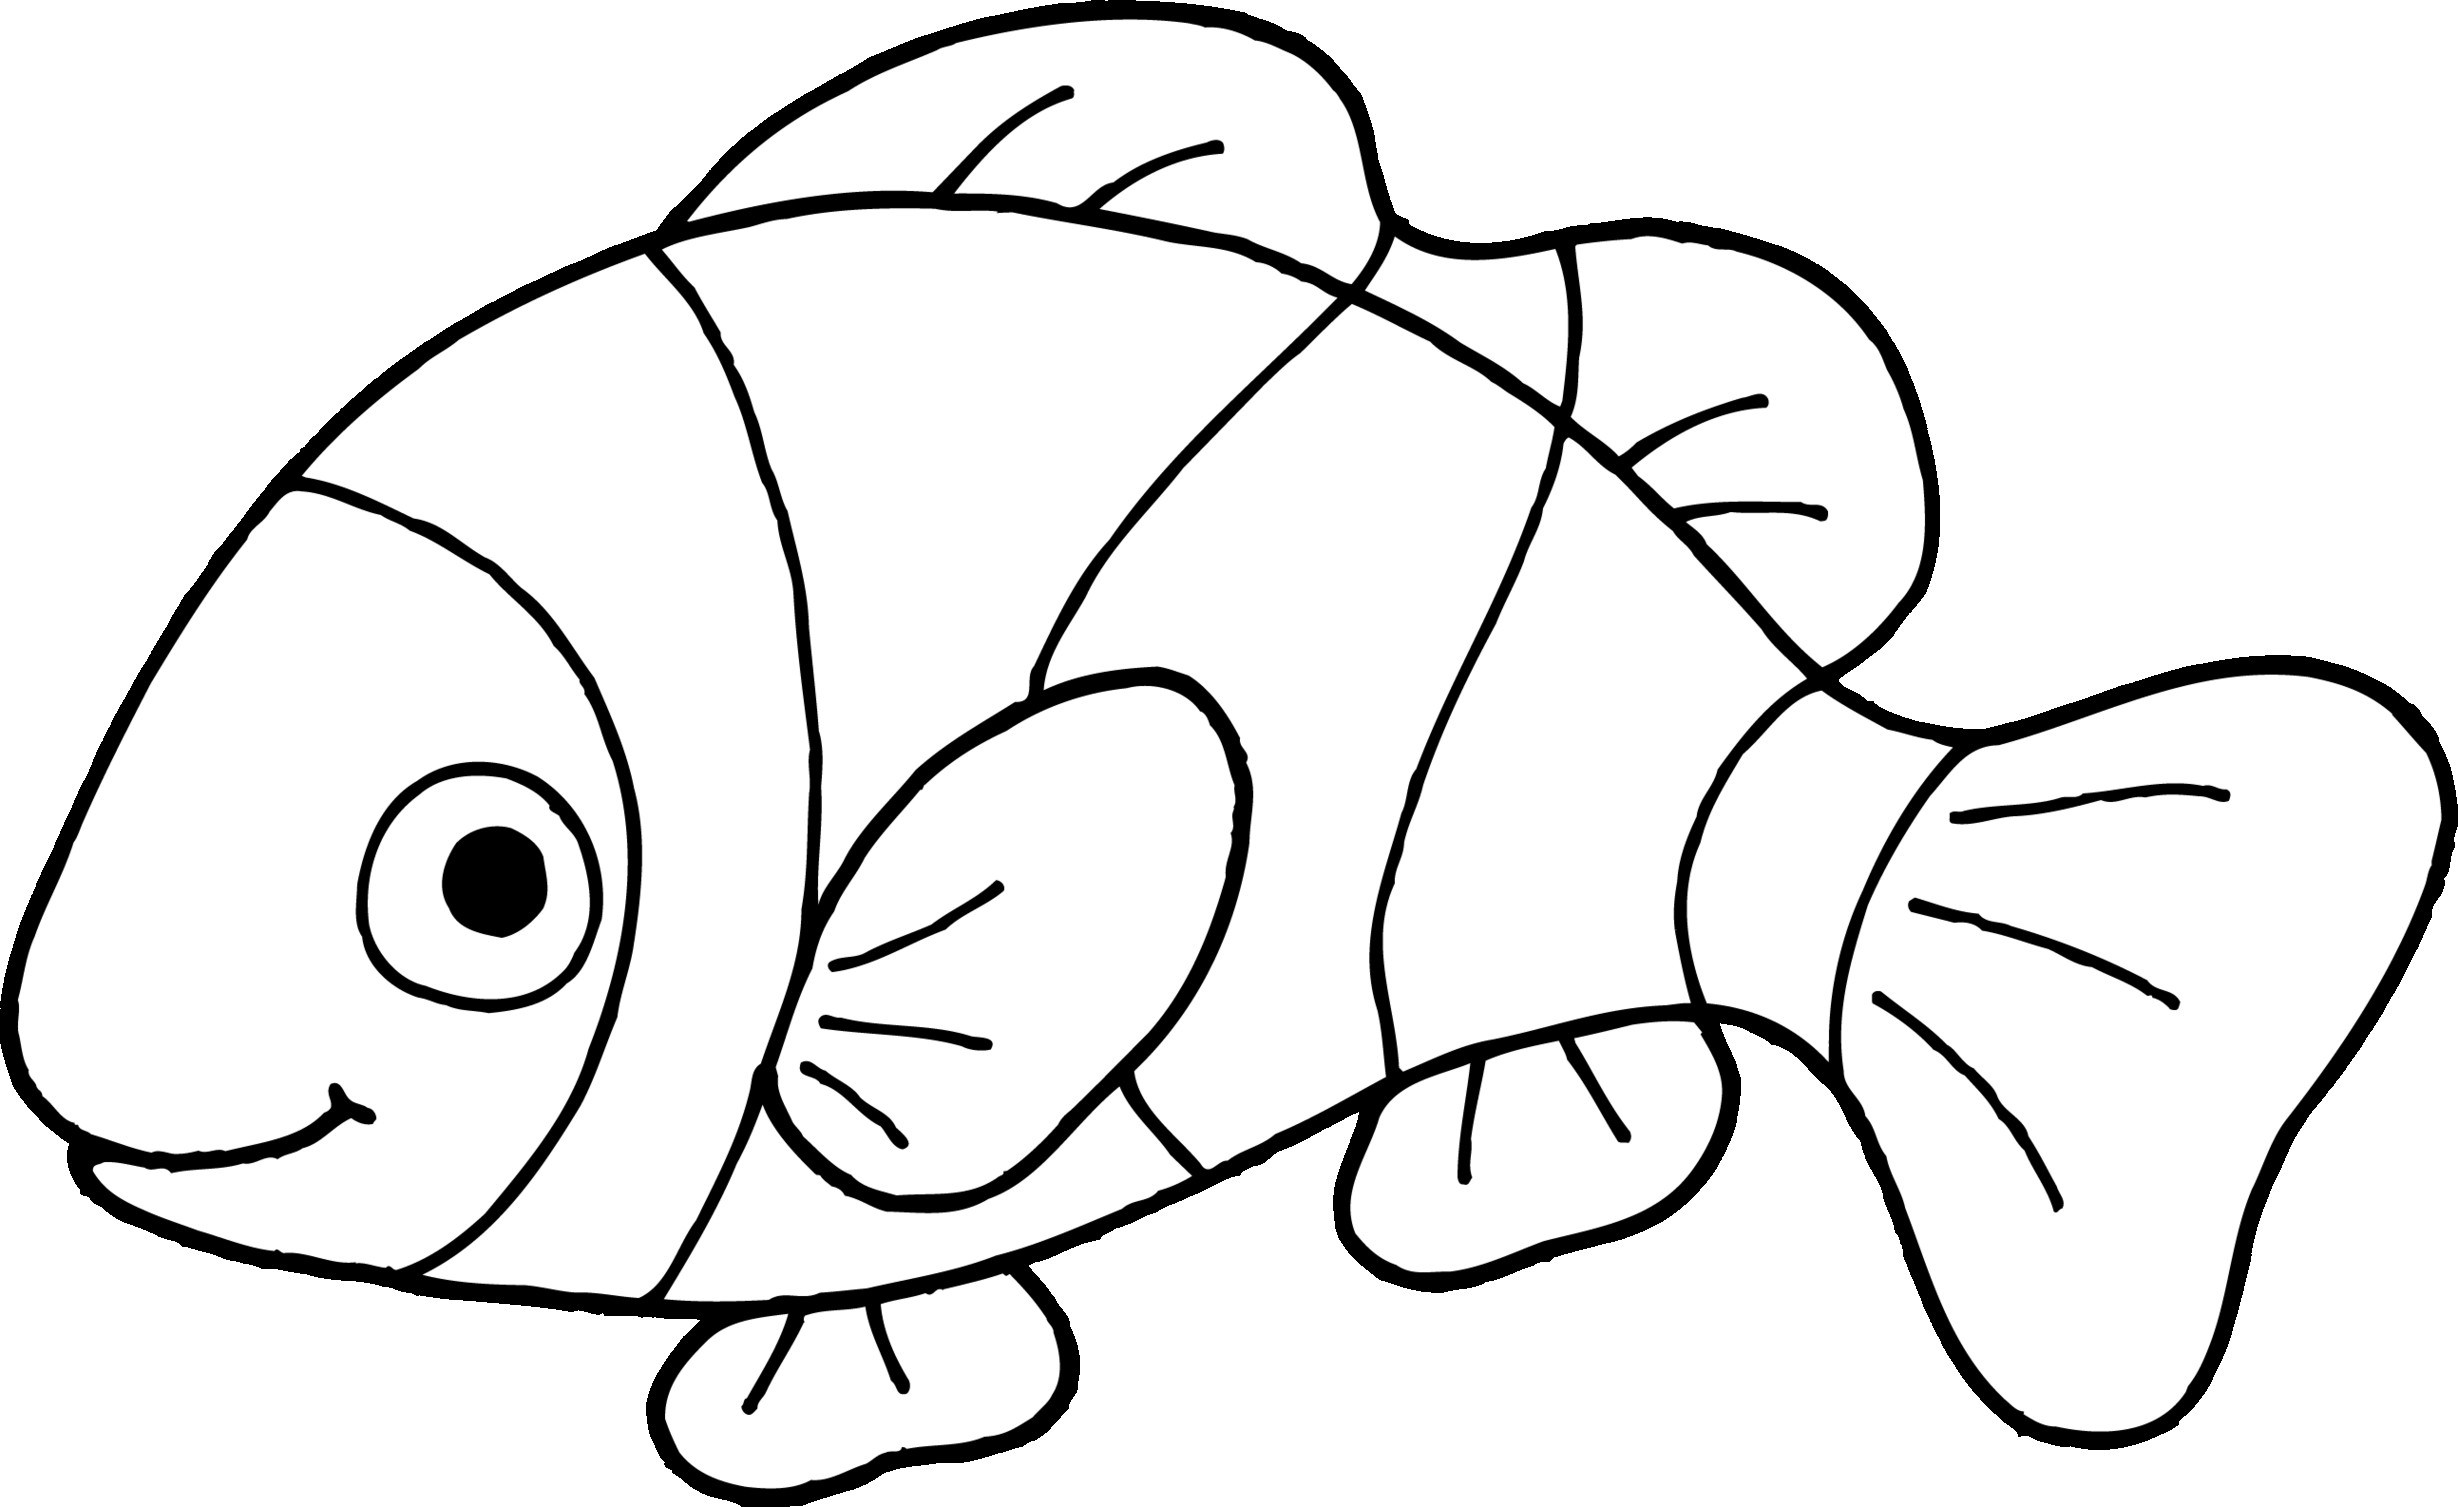 outline of a pig pig outline drawing free download on clipartmag outline a of pig